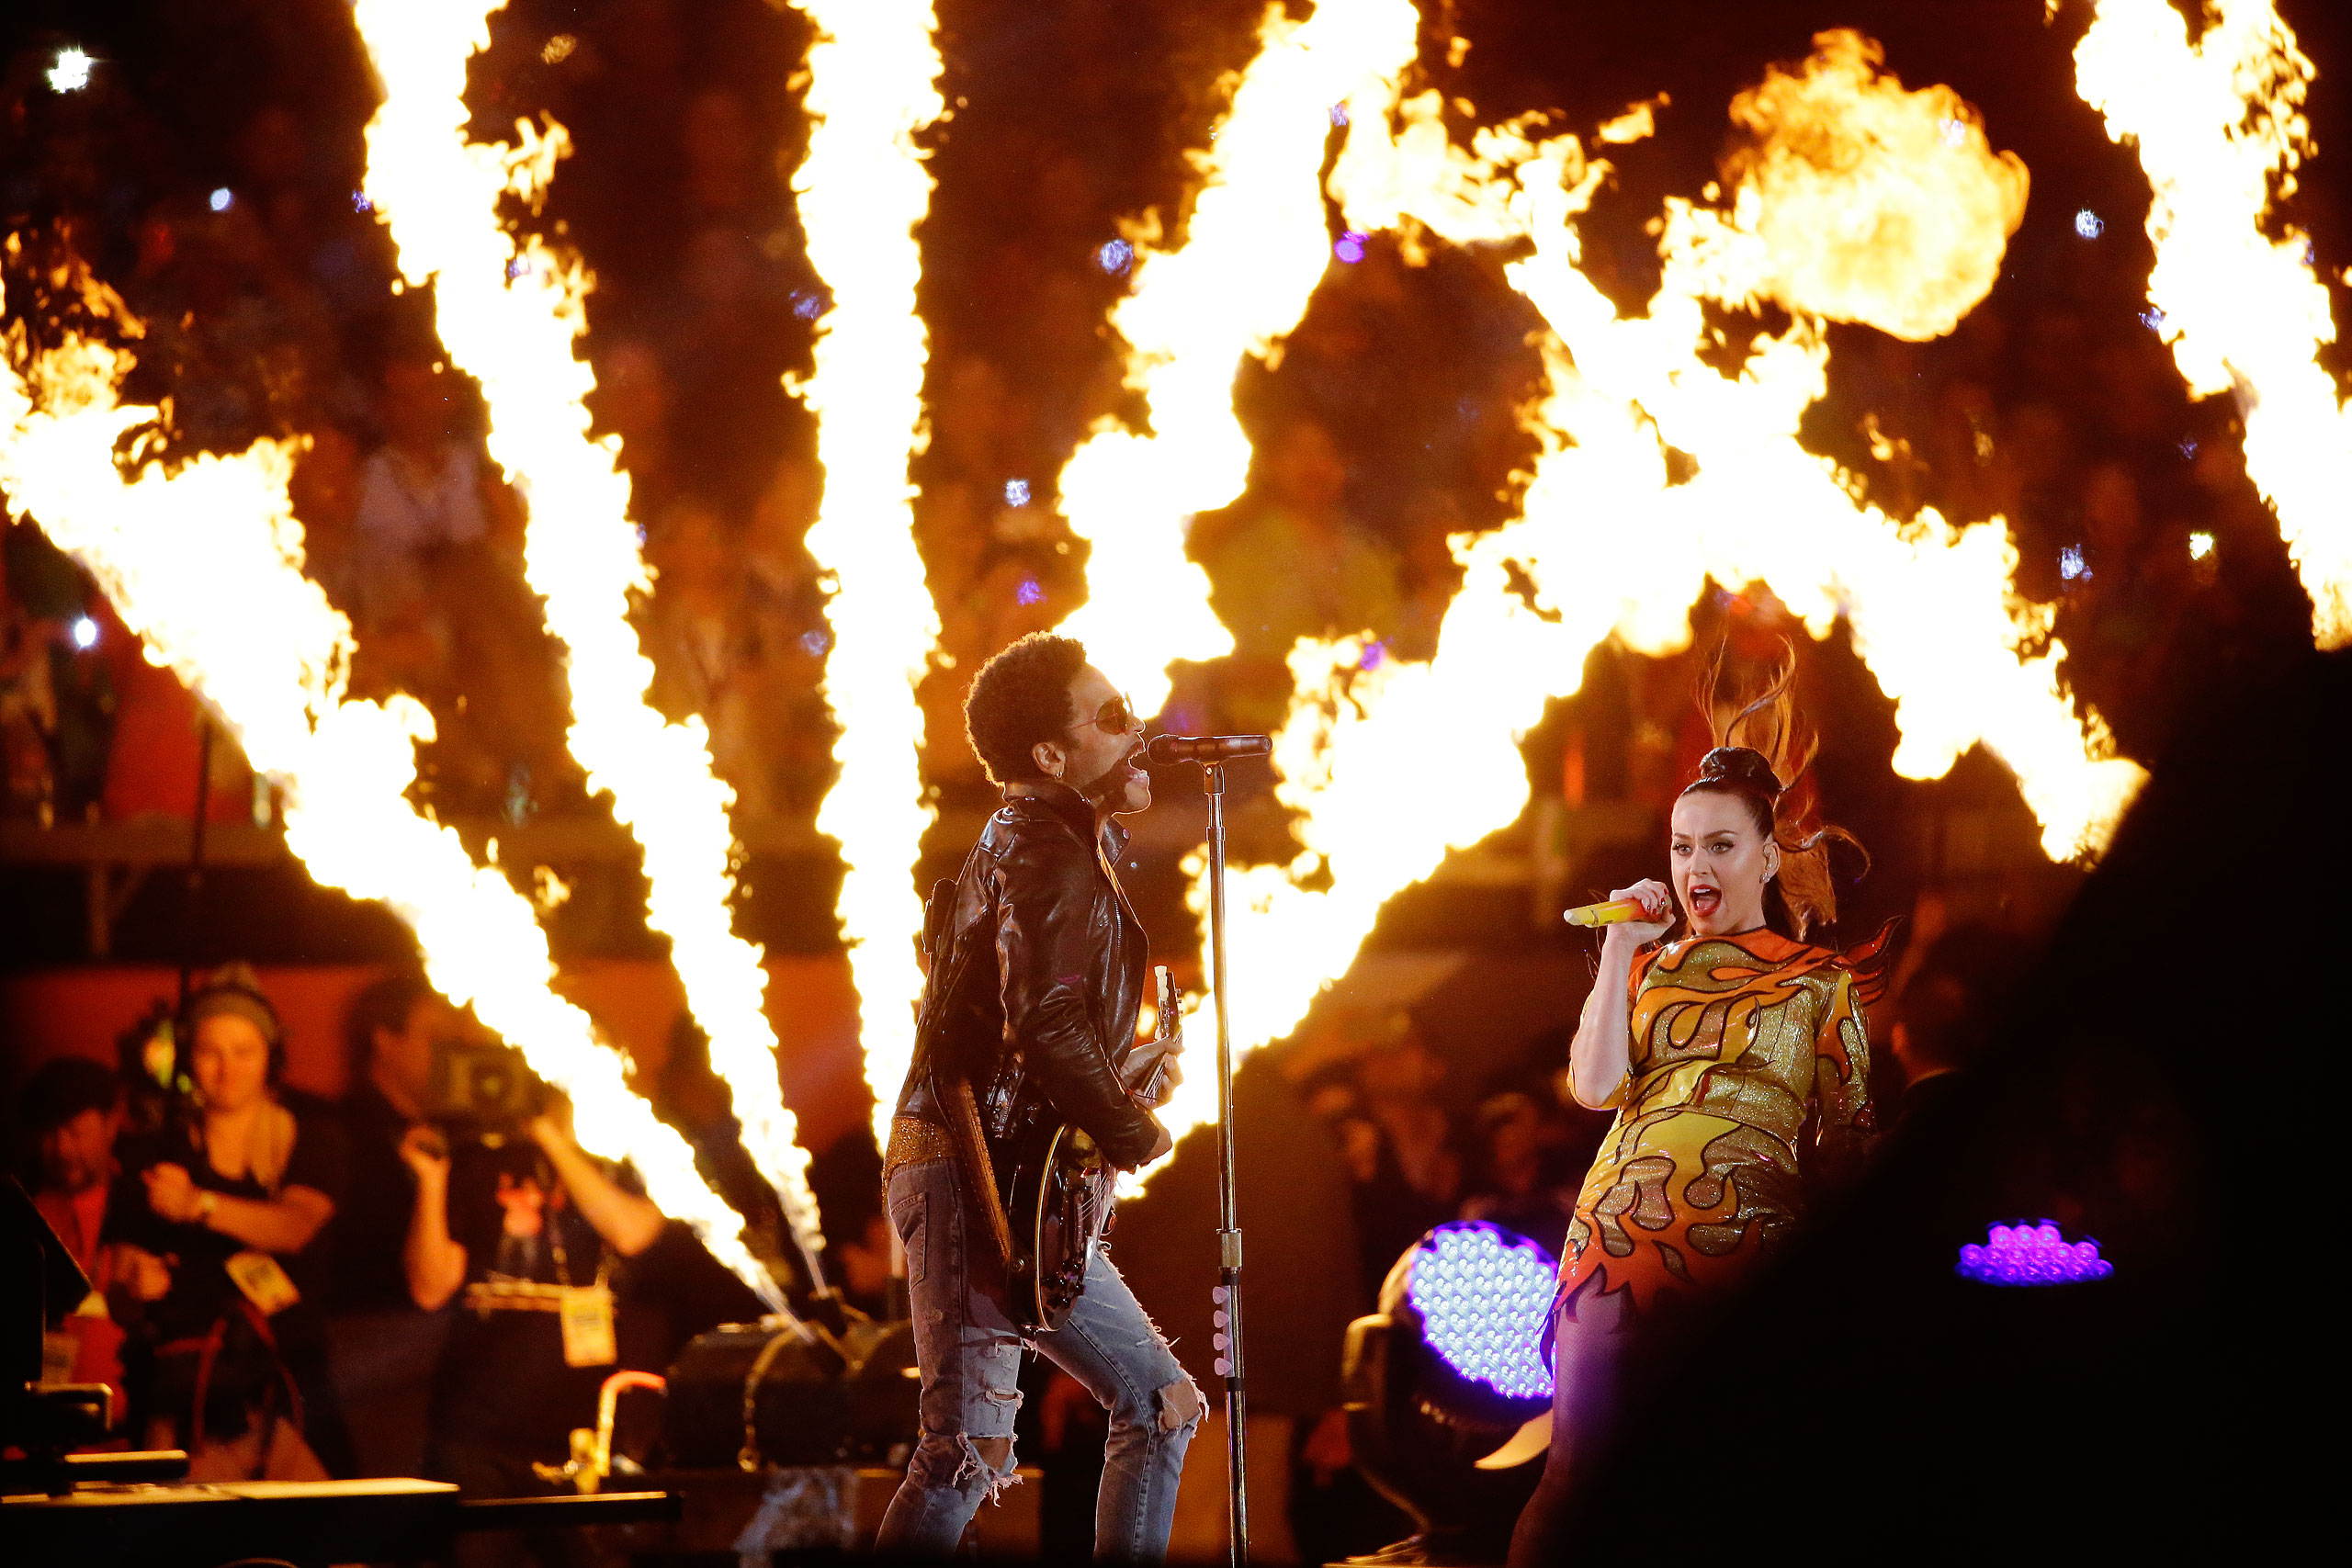 Katy Perry, right, and Lenny Kravitz perform during halftime of the NFL Super Bowl XLIX football game between the Seattle Seahawks and the New England Patriots on Feb. 1, 2015 in Glendale, Ariz.